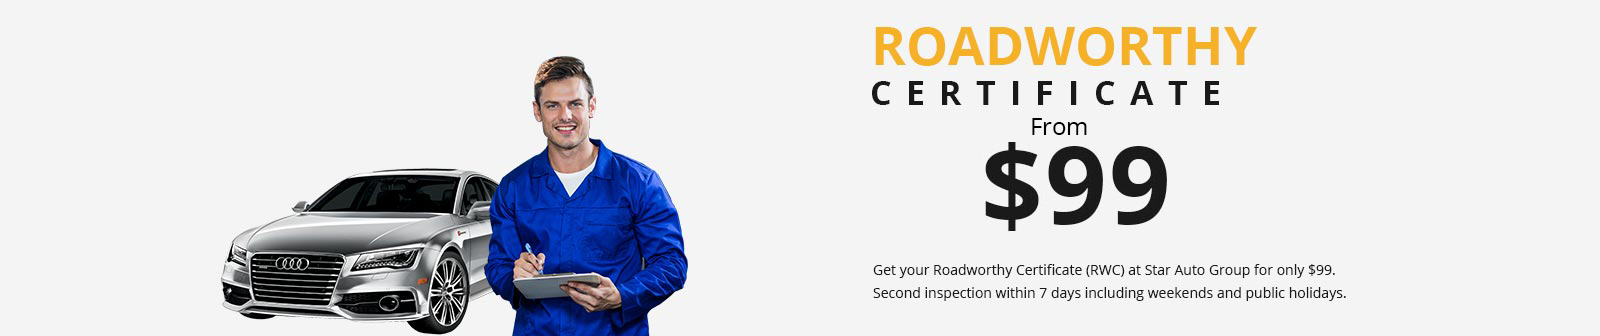 Roadworthy Certificates Melbourne Victoria - Cheap RWC Starting from $99